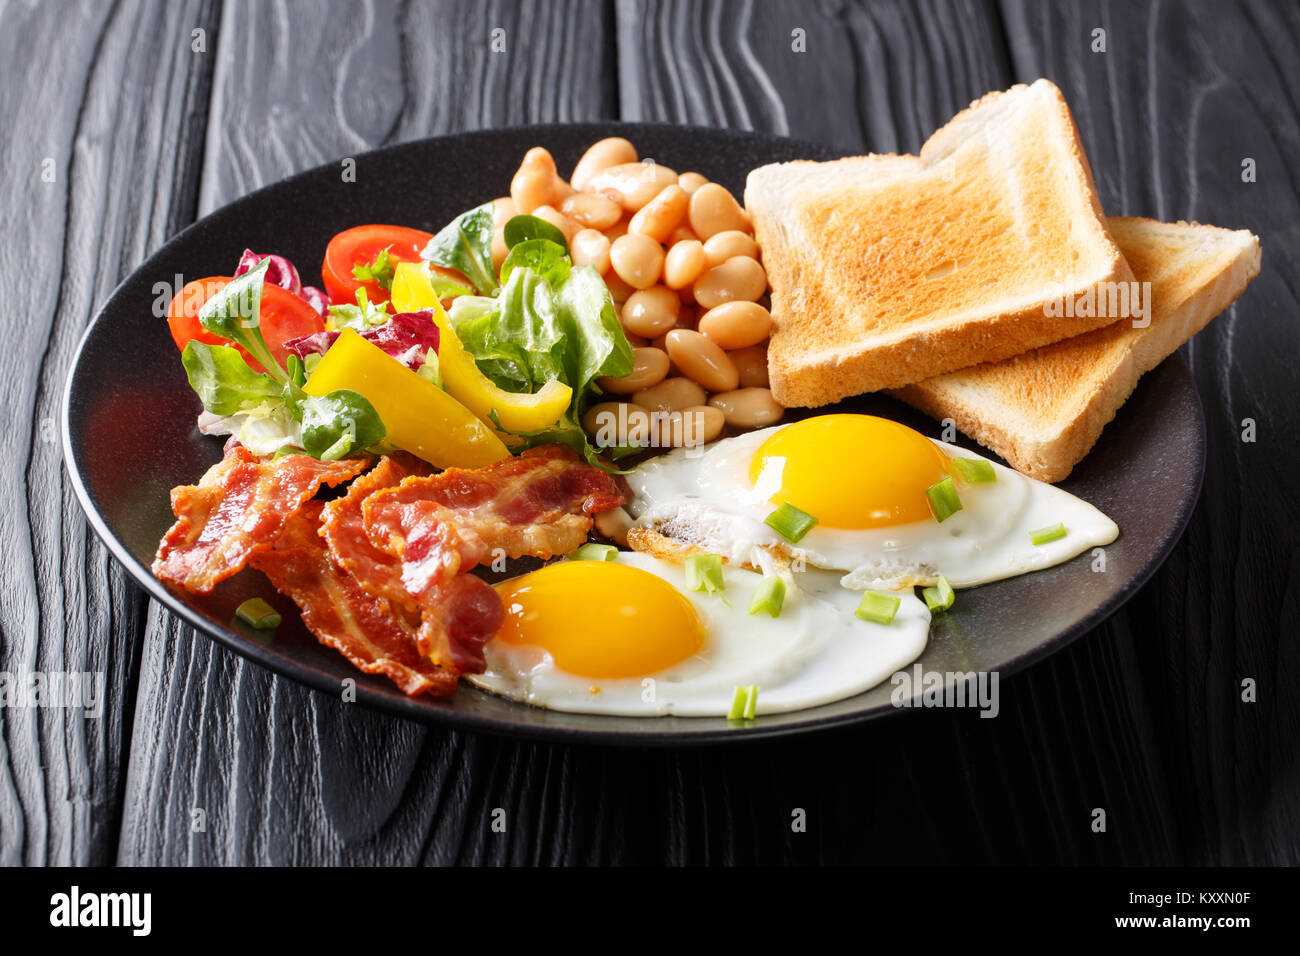 Delicious and hearty meal: two fried eggs with bacon, beans, toast and vegetable salad on the table. Classic breakfast. - Stock Image